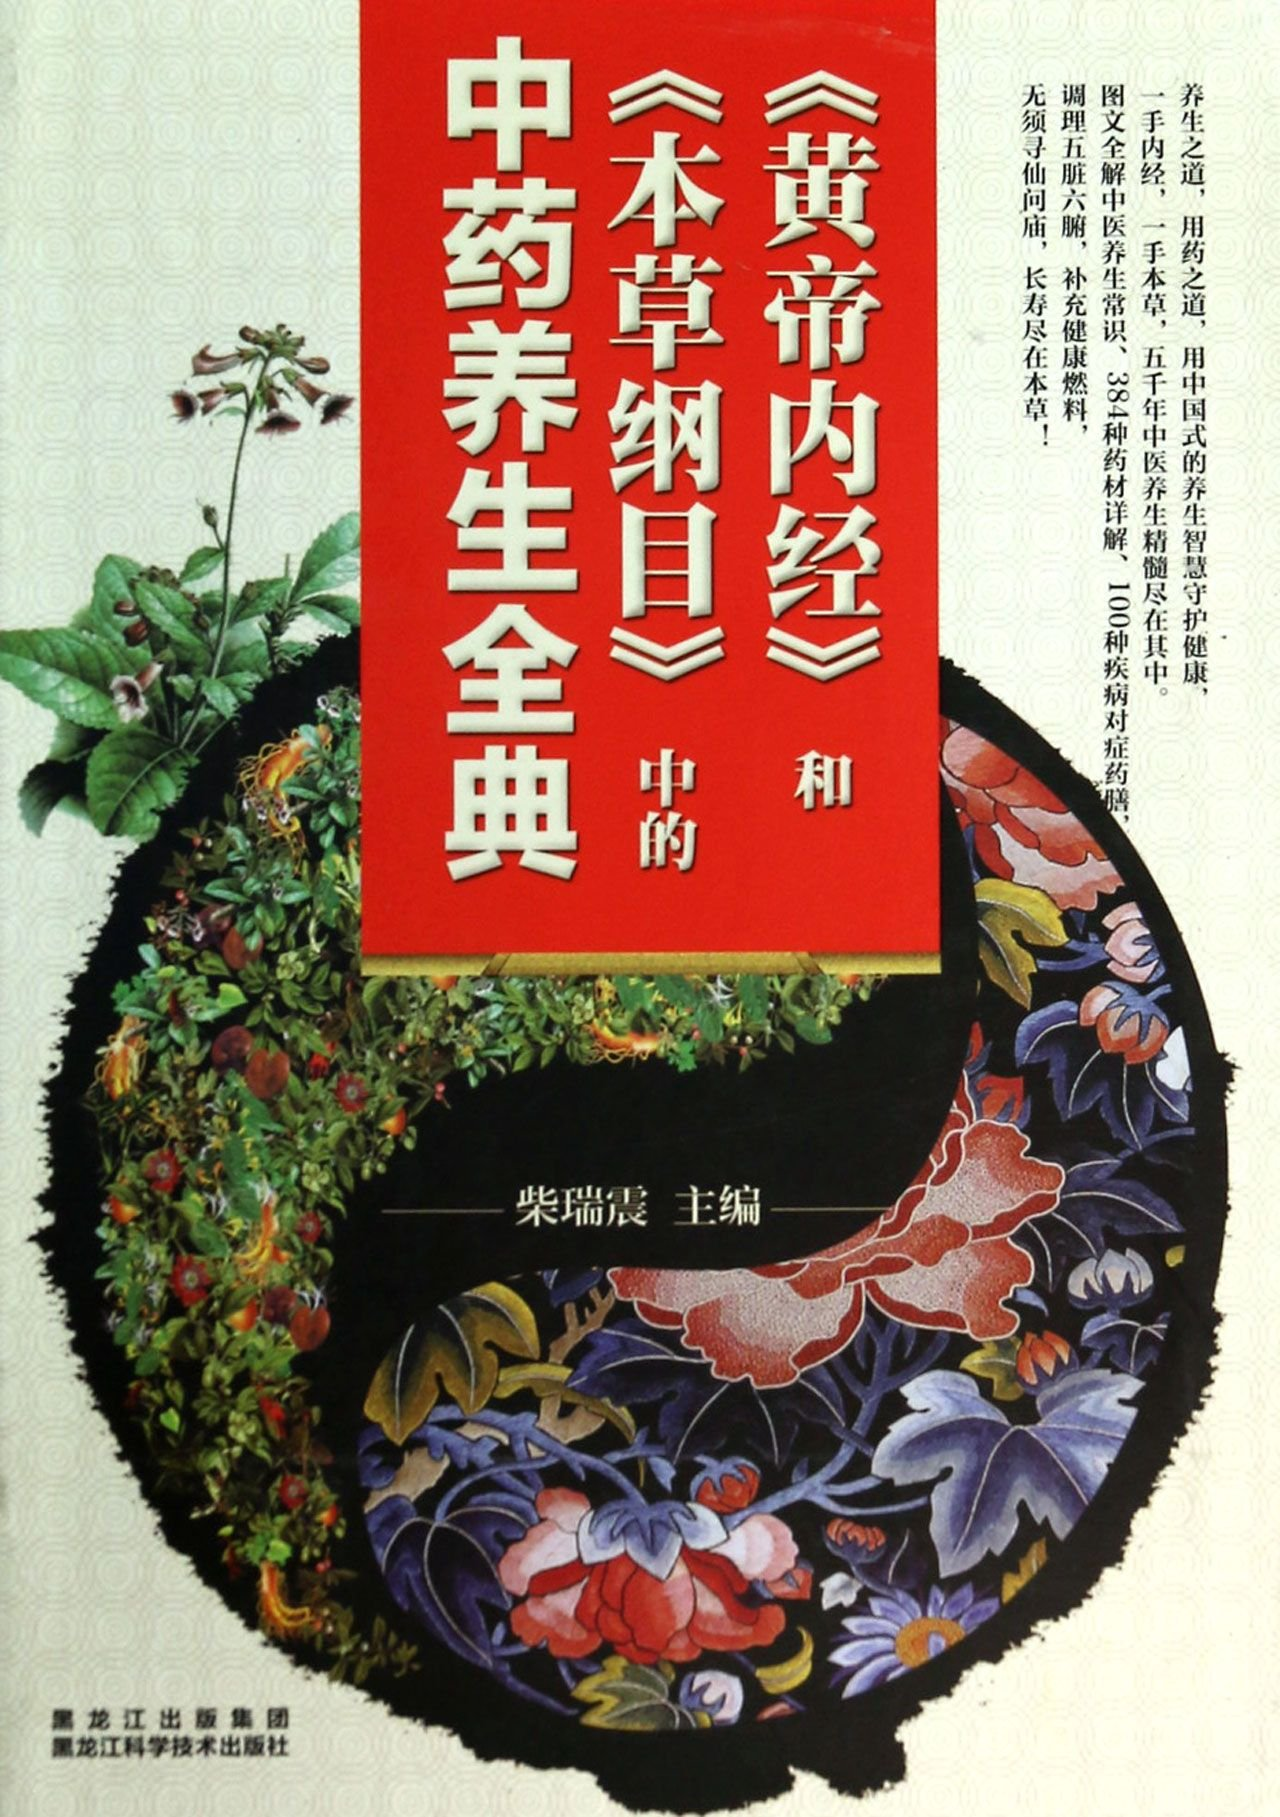 Read Online Yellow Emperor and Compendium of Materia Medica in the Chinese Herbal full Code(Chinese Edition) ebook